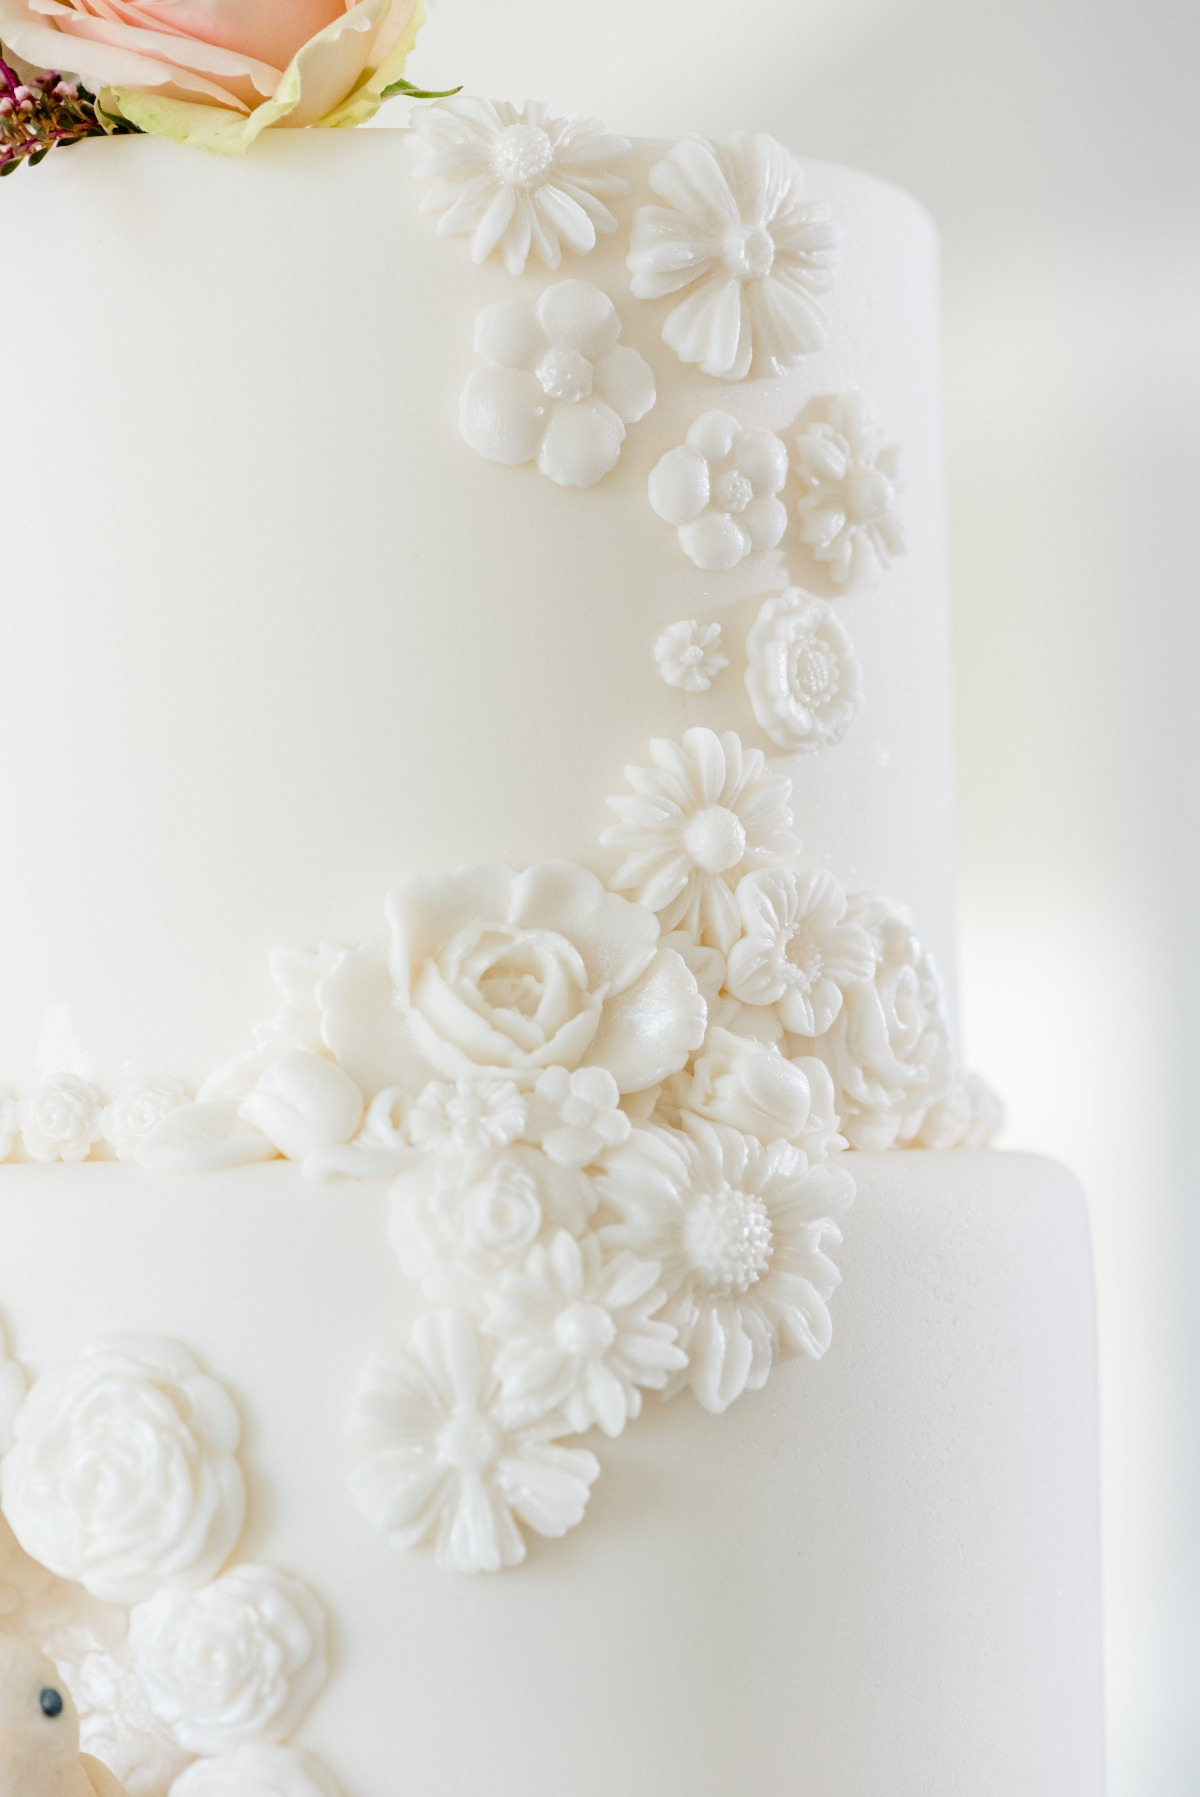 intricate white wedding cake decoration